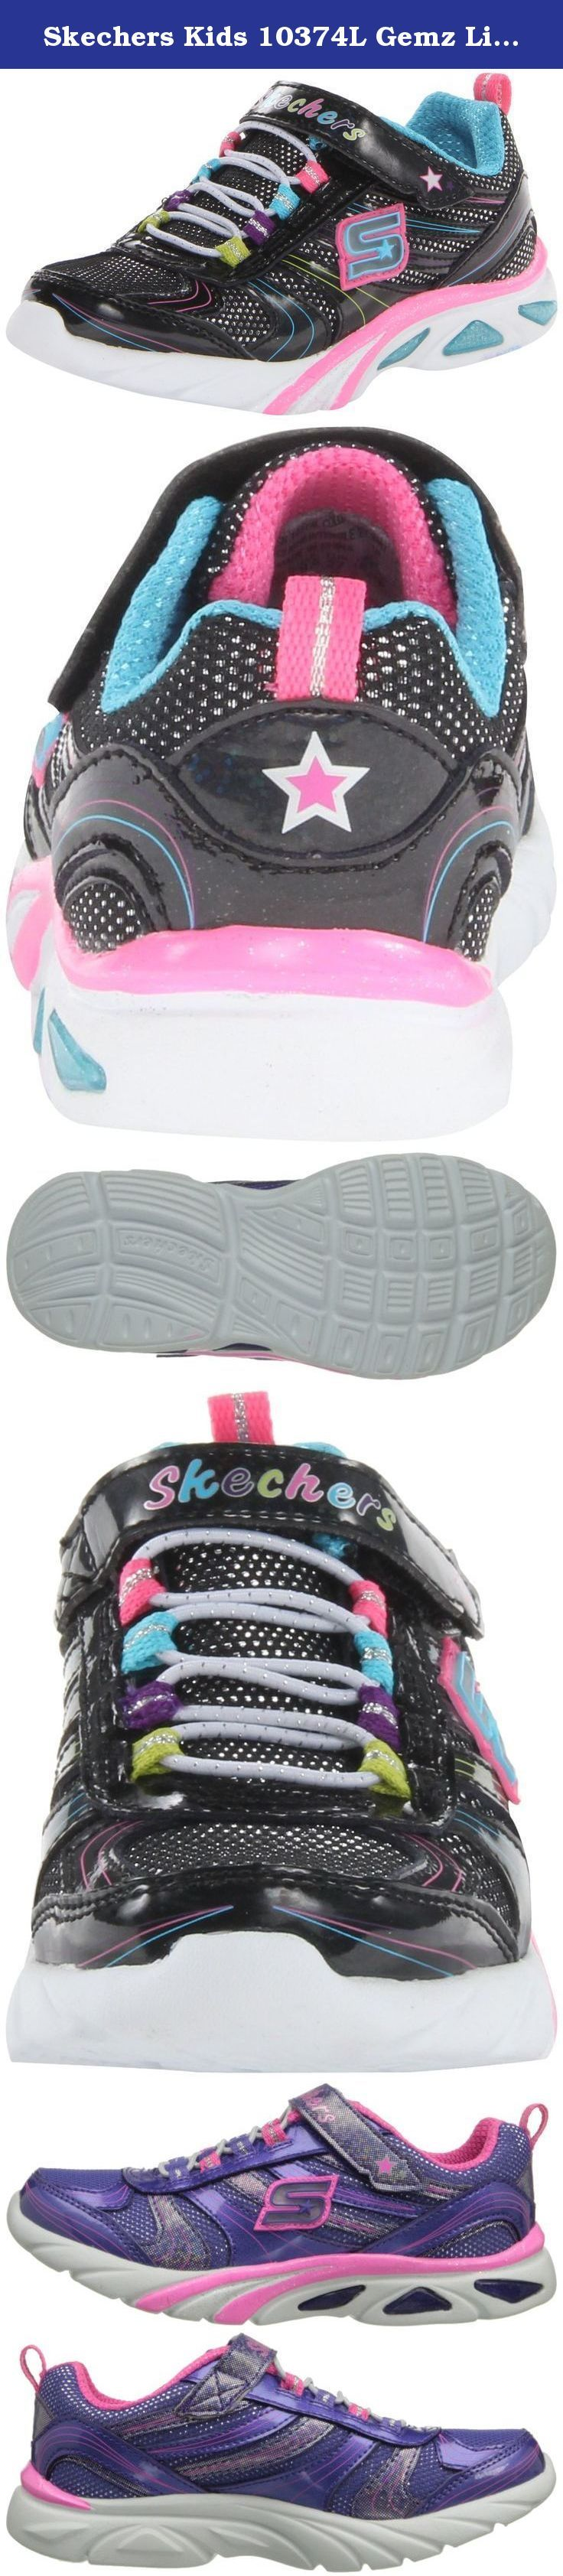 Skechers Kids 10374L Gemz Light-Up Sneaker (Little Kid). Girl's Skechers, S Lights Light Gemz Slip on Athletics Let her love this sporty style with fun lights and sparkling details! Leather, fabric and manmade upper with logo and glitter overlays for added appeal Skechers logo and midsole features lights that blink with every step Bungee lace up panel with adjustable hook and loop closure for an easy on and off Soft fabric lining with a cushioned footbed for added comfort Shock absorbing...